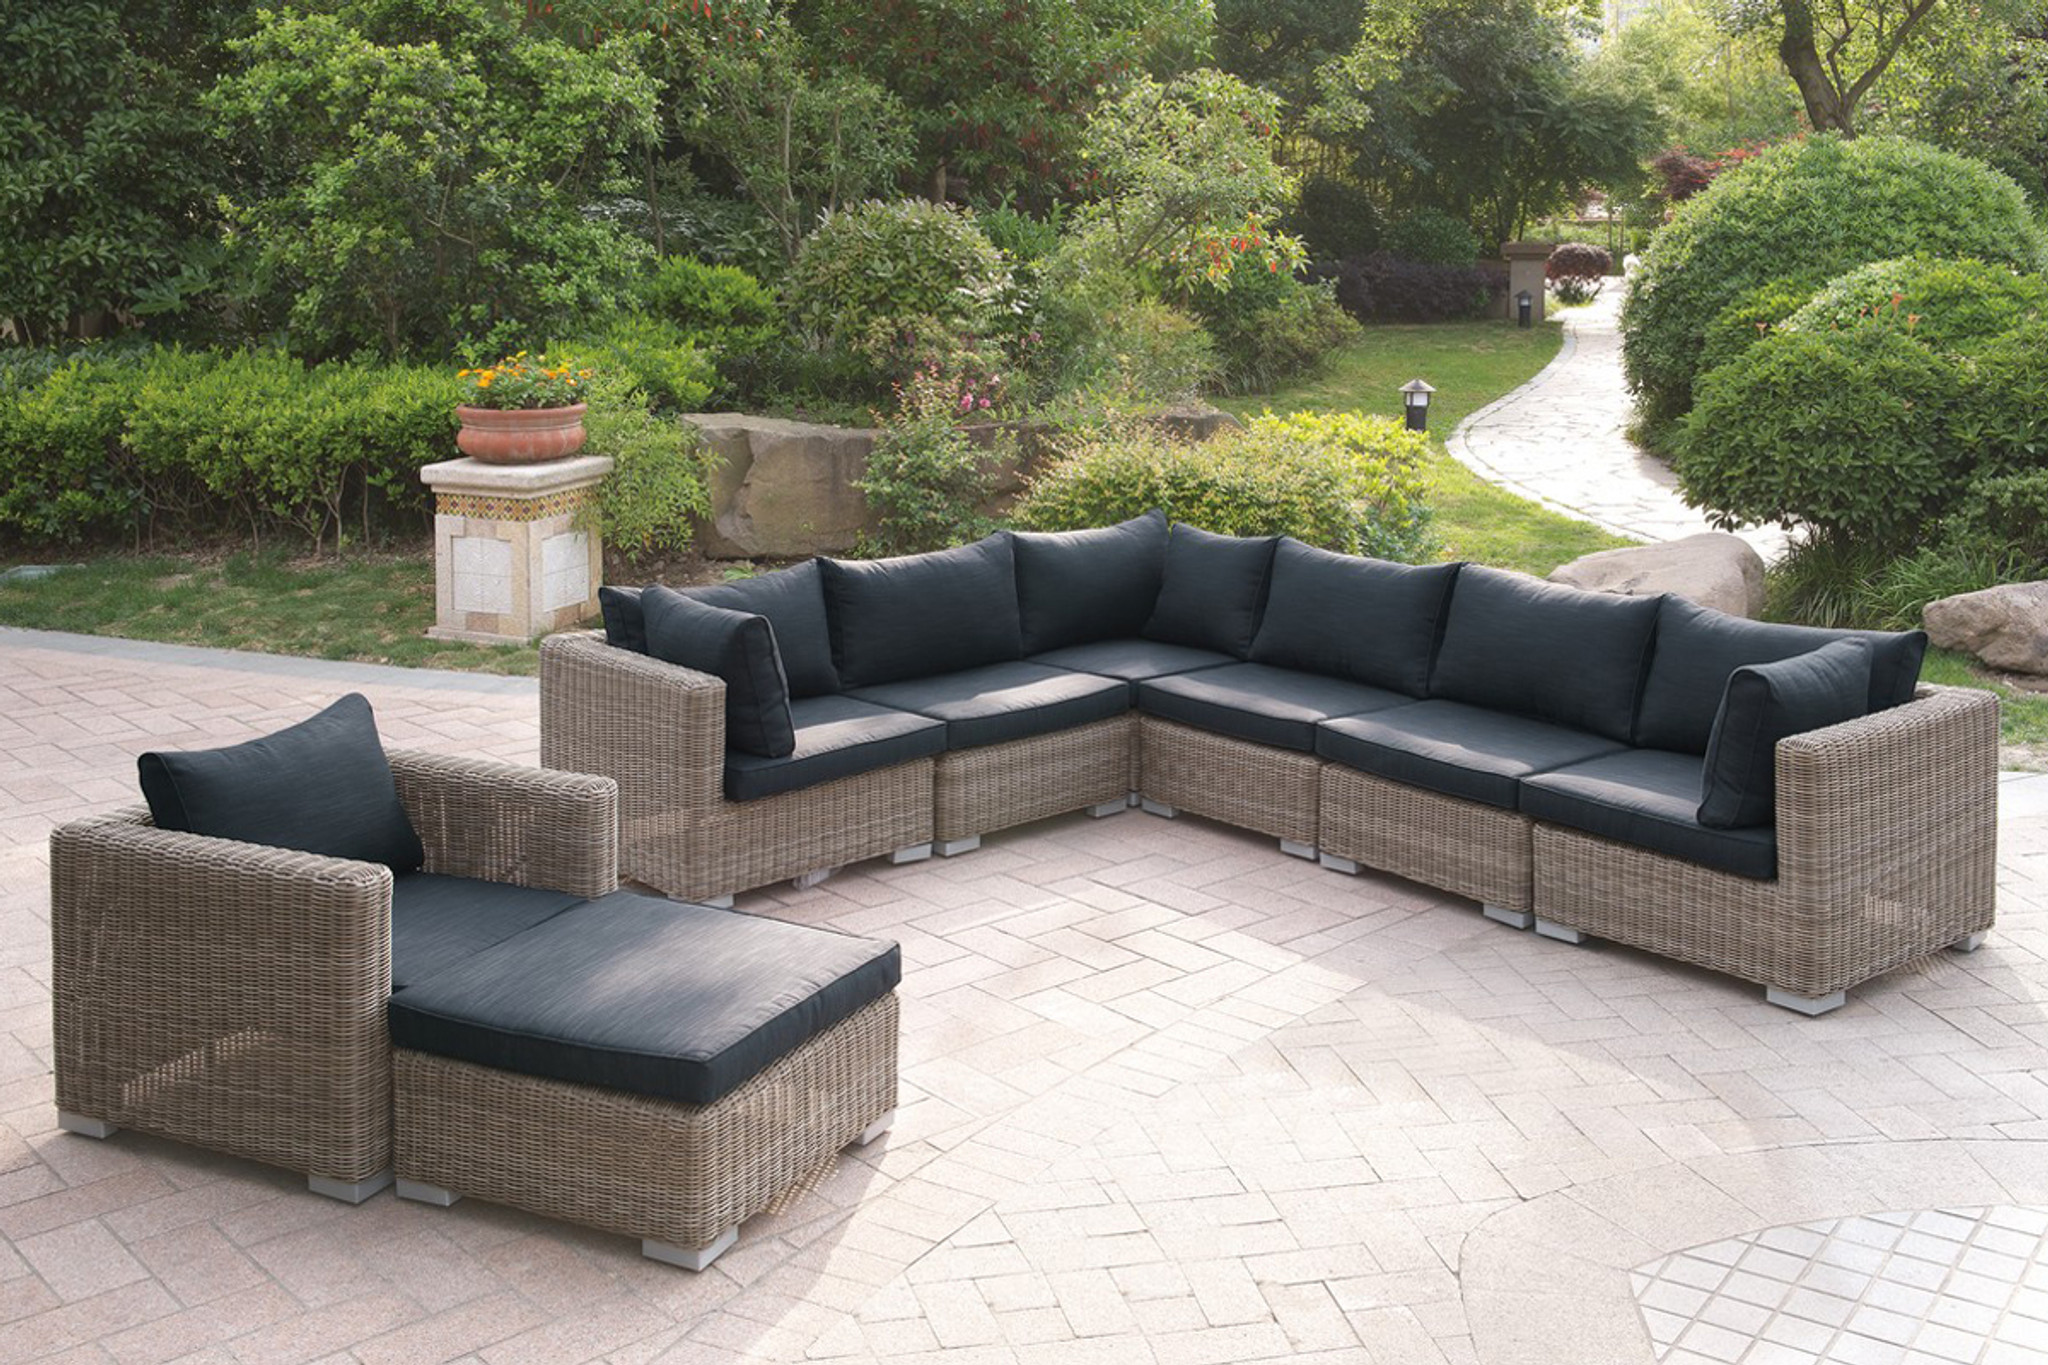 Swell 8Pc Outdoor Patio Sofa Set In Tan Resin Wicker Finish And Black Seat Cushions Home Interior And Landscaping Oversignezvosmurscom